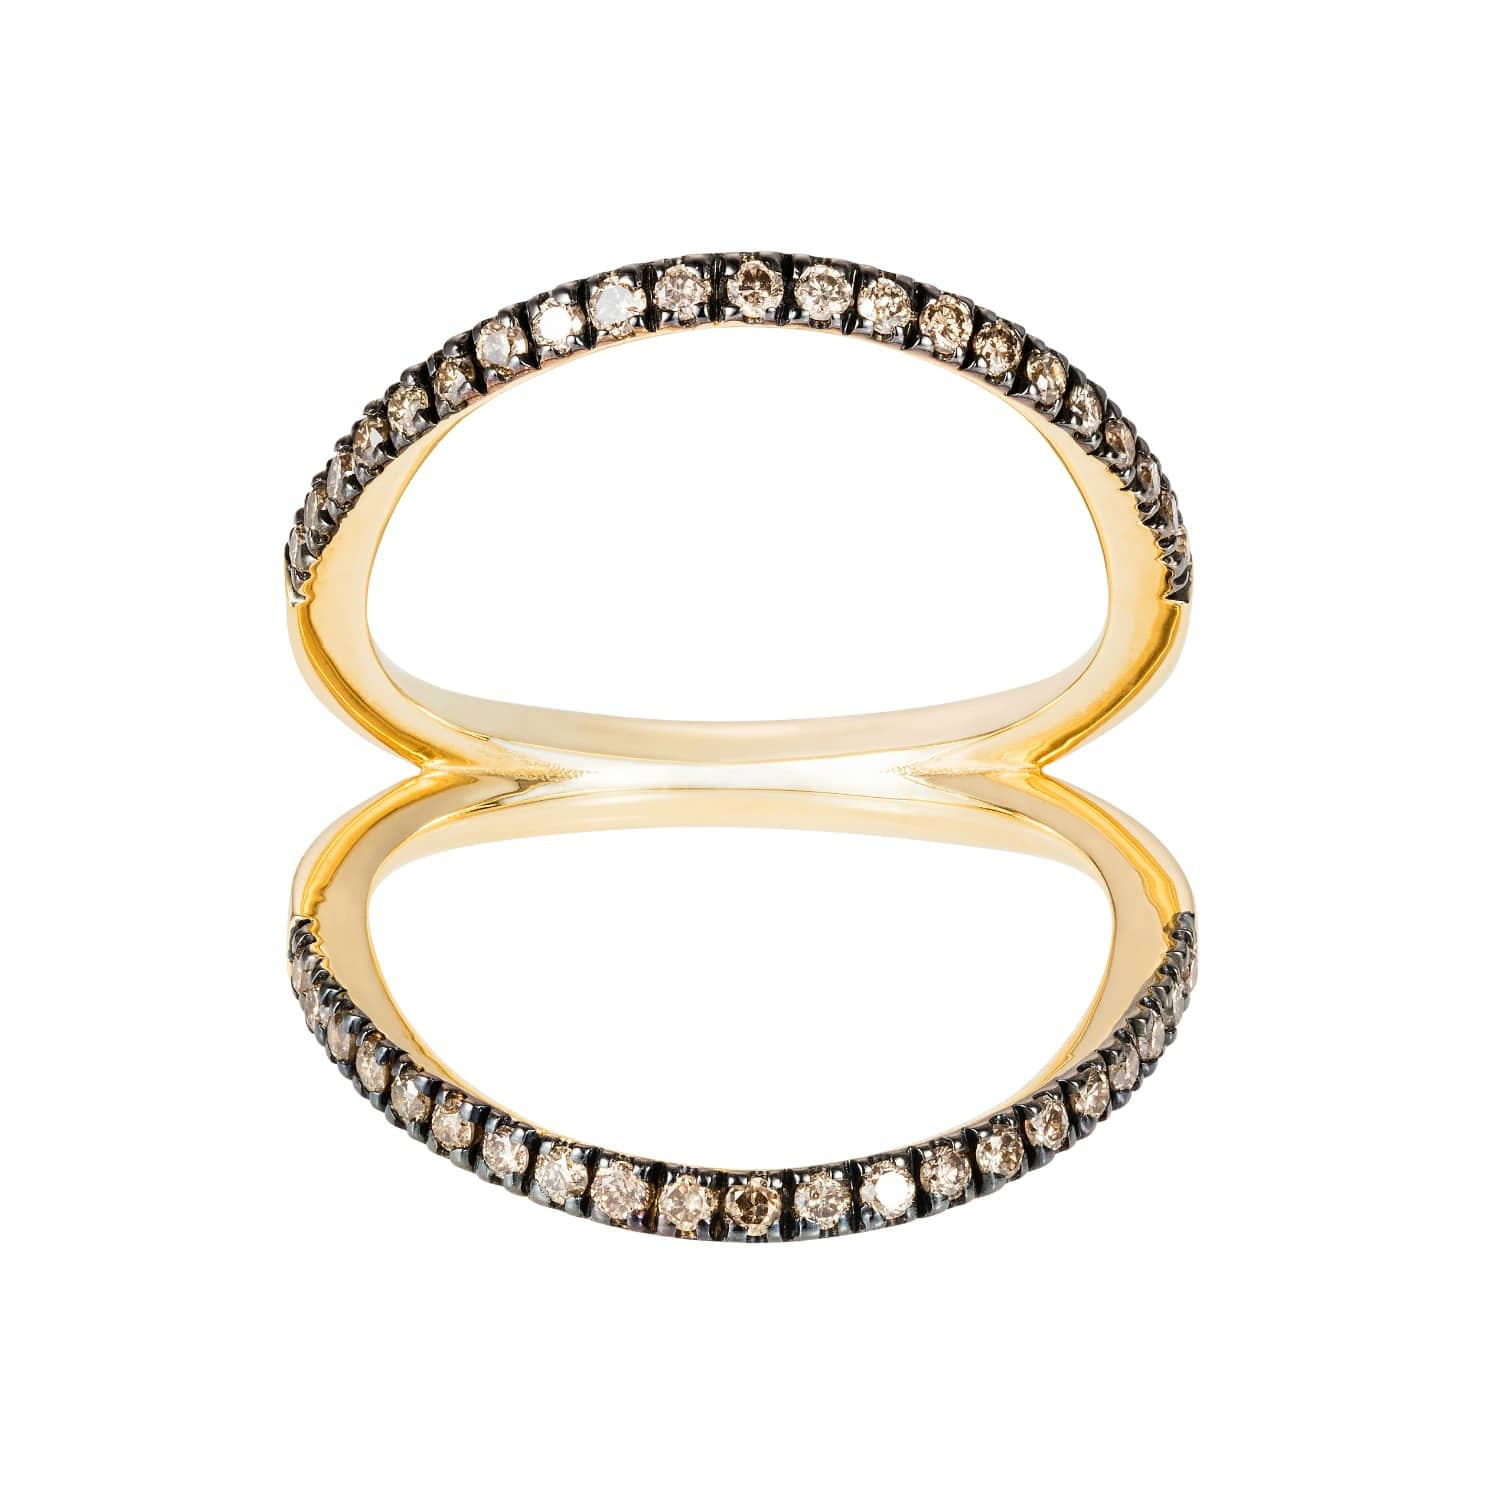 Numerati Lucky Number 8 Ring by Sarah Ho - SHO